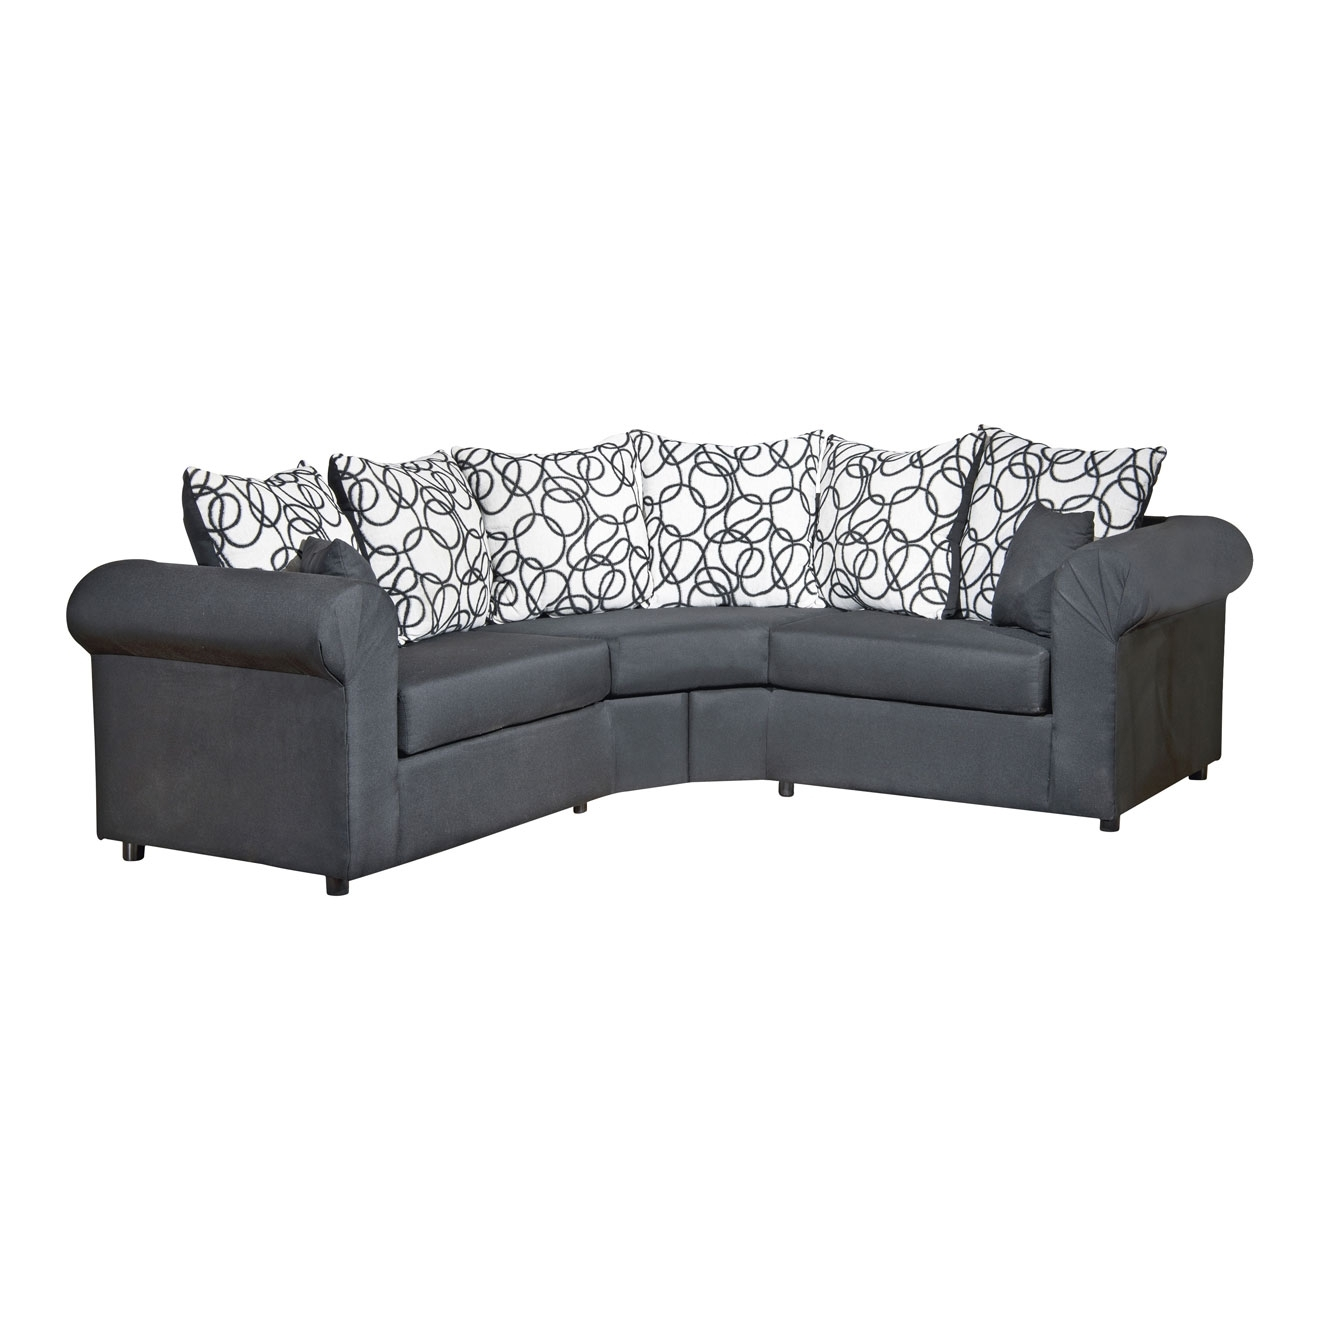 Sectional Sofa: Recommended 45 Degree Sectional Sofa 135 Degree For Current Sectional Sofas In Greenville Sc (View 15 of 15)